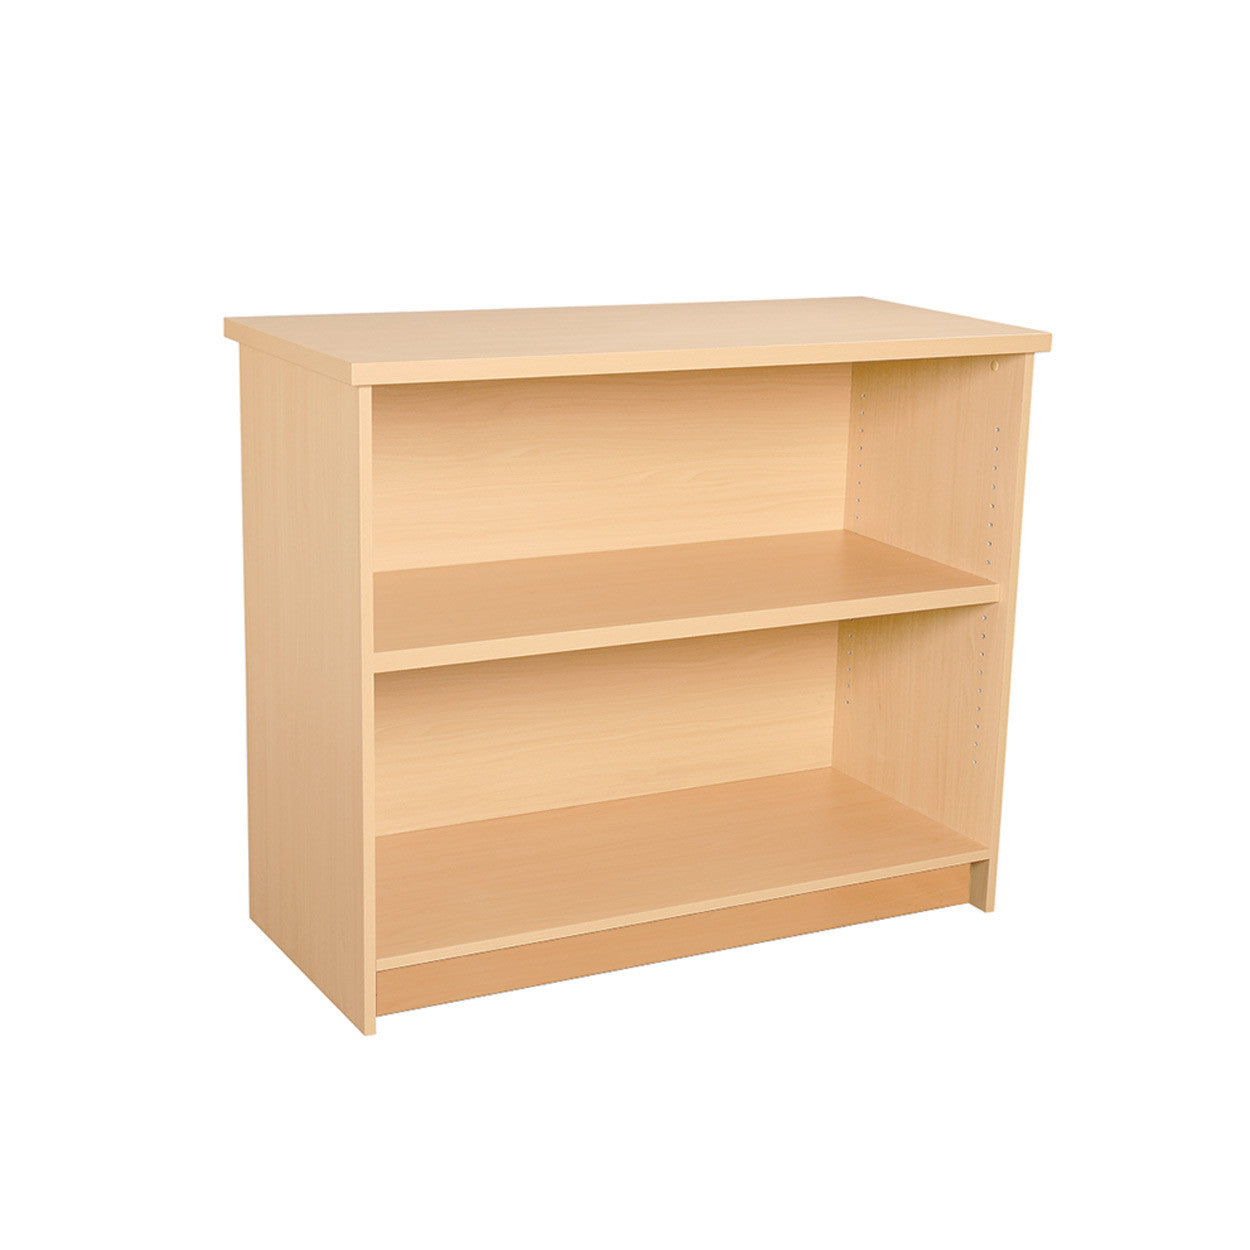 Counter 1200 mm with timber laminate with adjustable shelf  1200 W x 1000 H x 544 mm D F4012BH